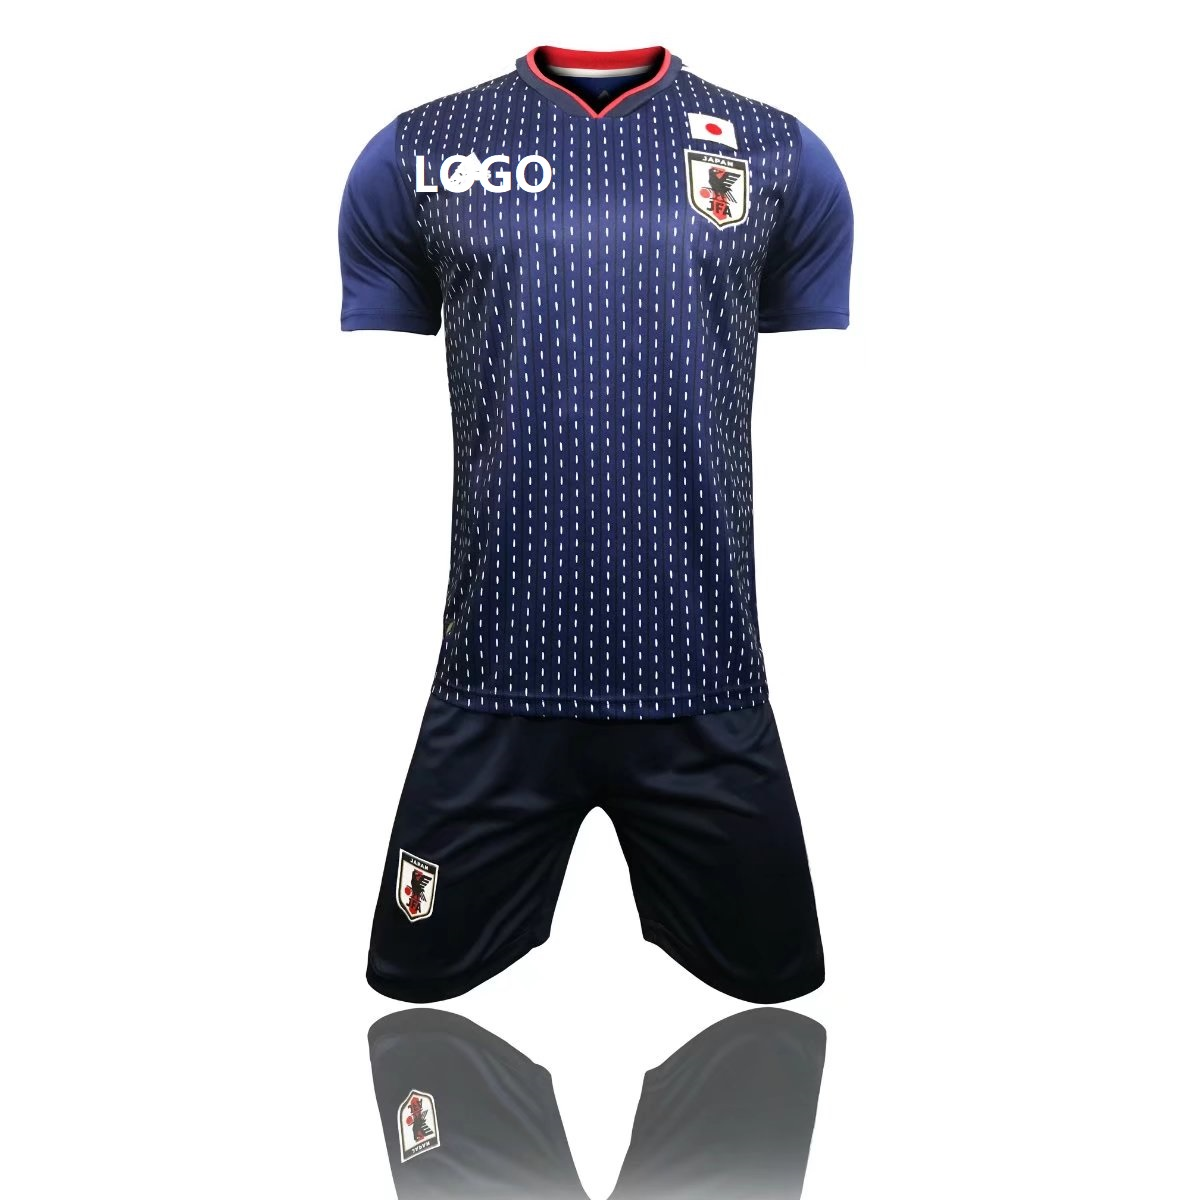 premium selection 26f66 32b15 2018 Adult Japan Home Blue/white Soccer Jersey Uniforms Russia World Cup  Football Team Kits Custom Name Number